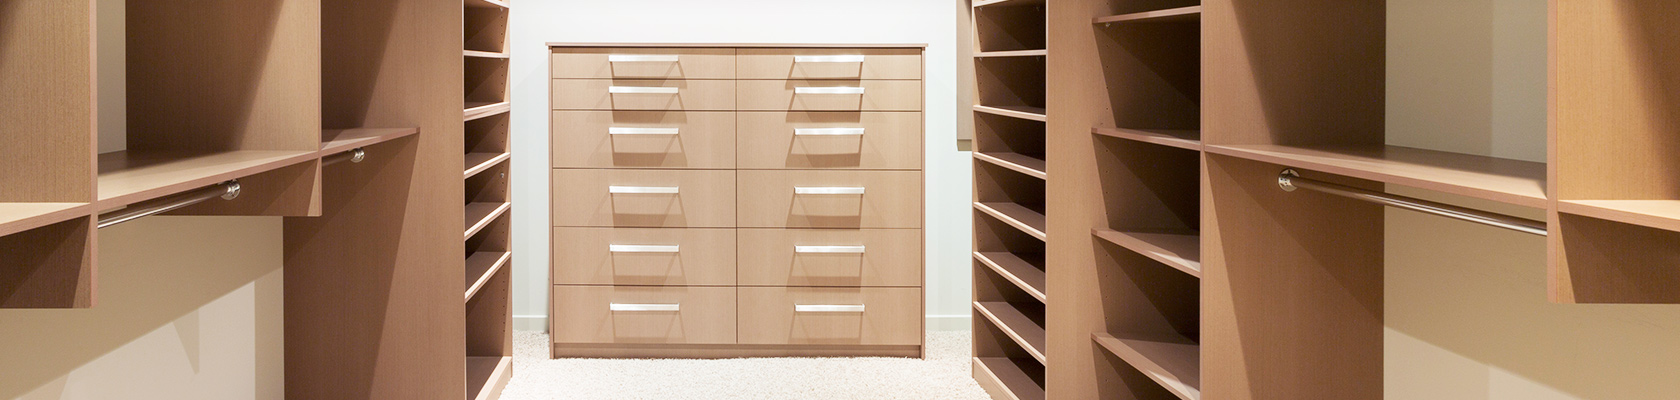 closets installation